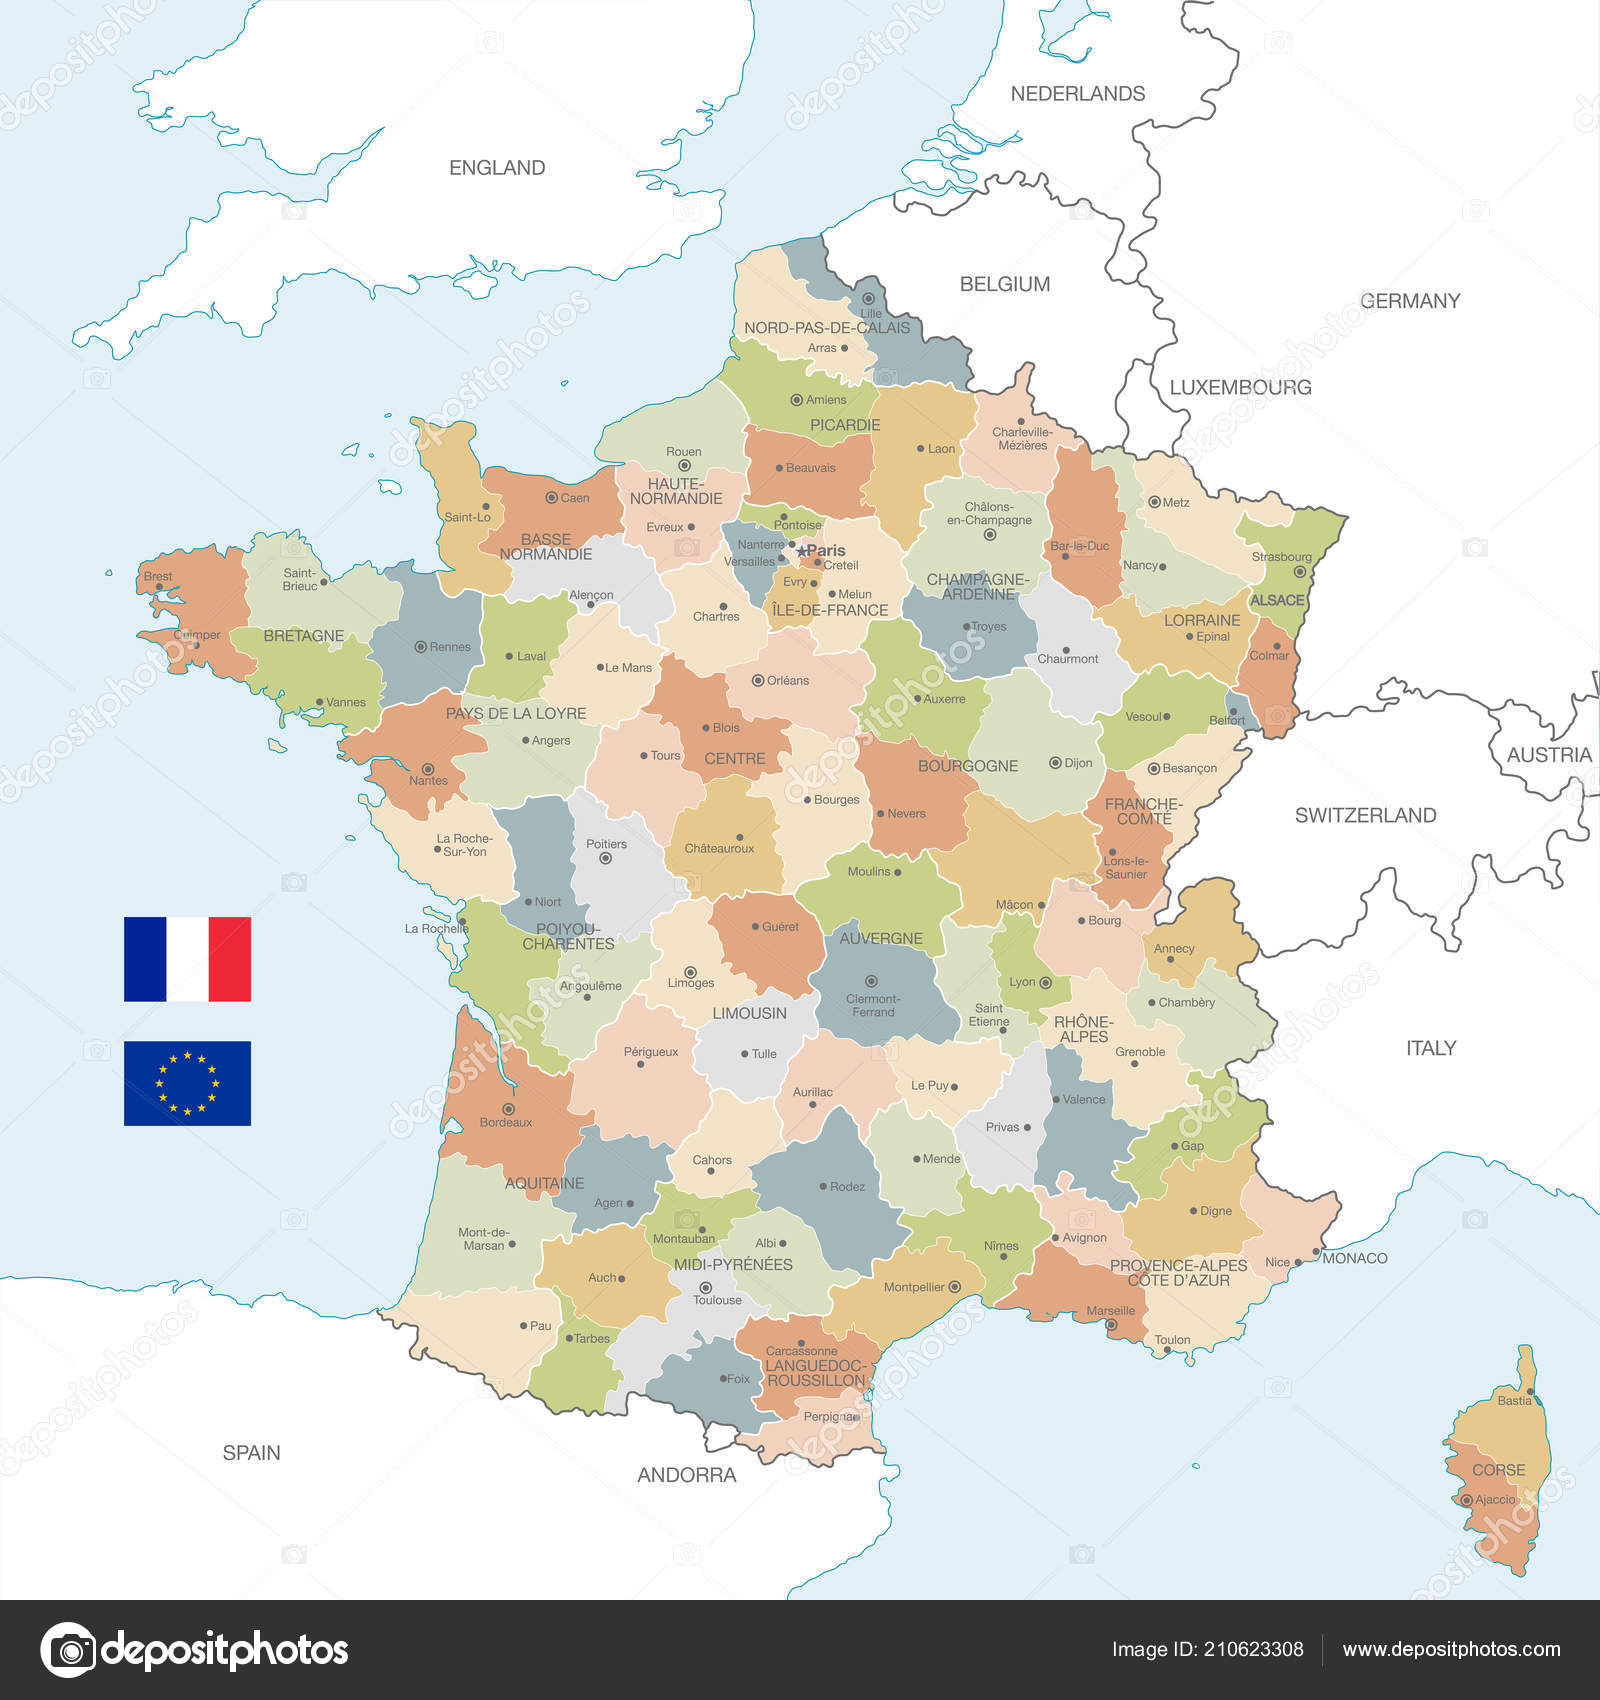 The Map Of France With The City.Vector Map France Administrative Borders City Region Names